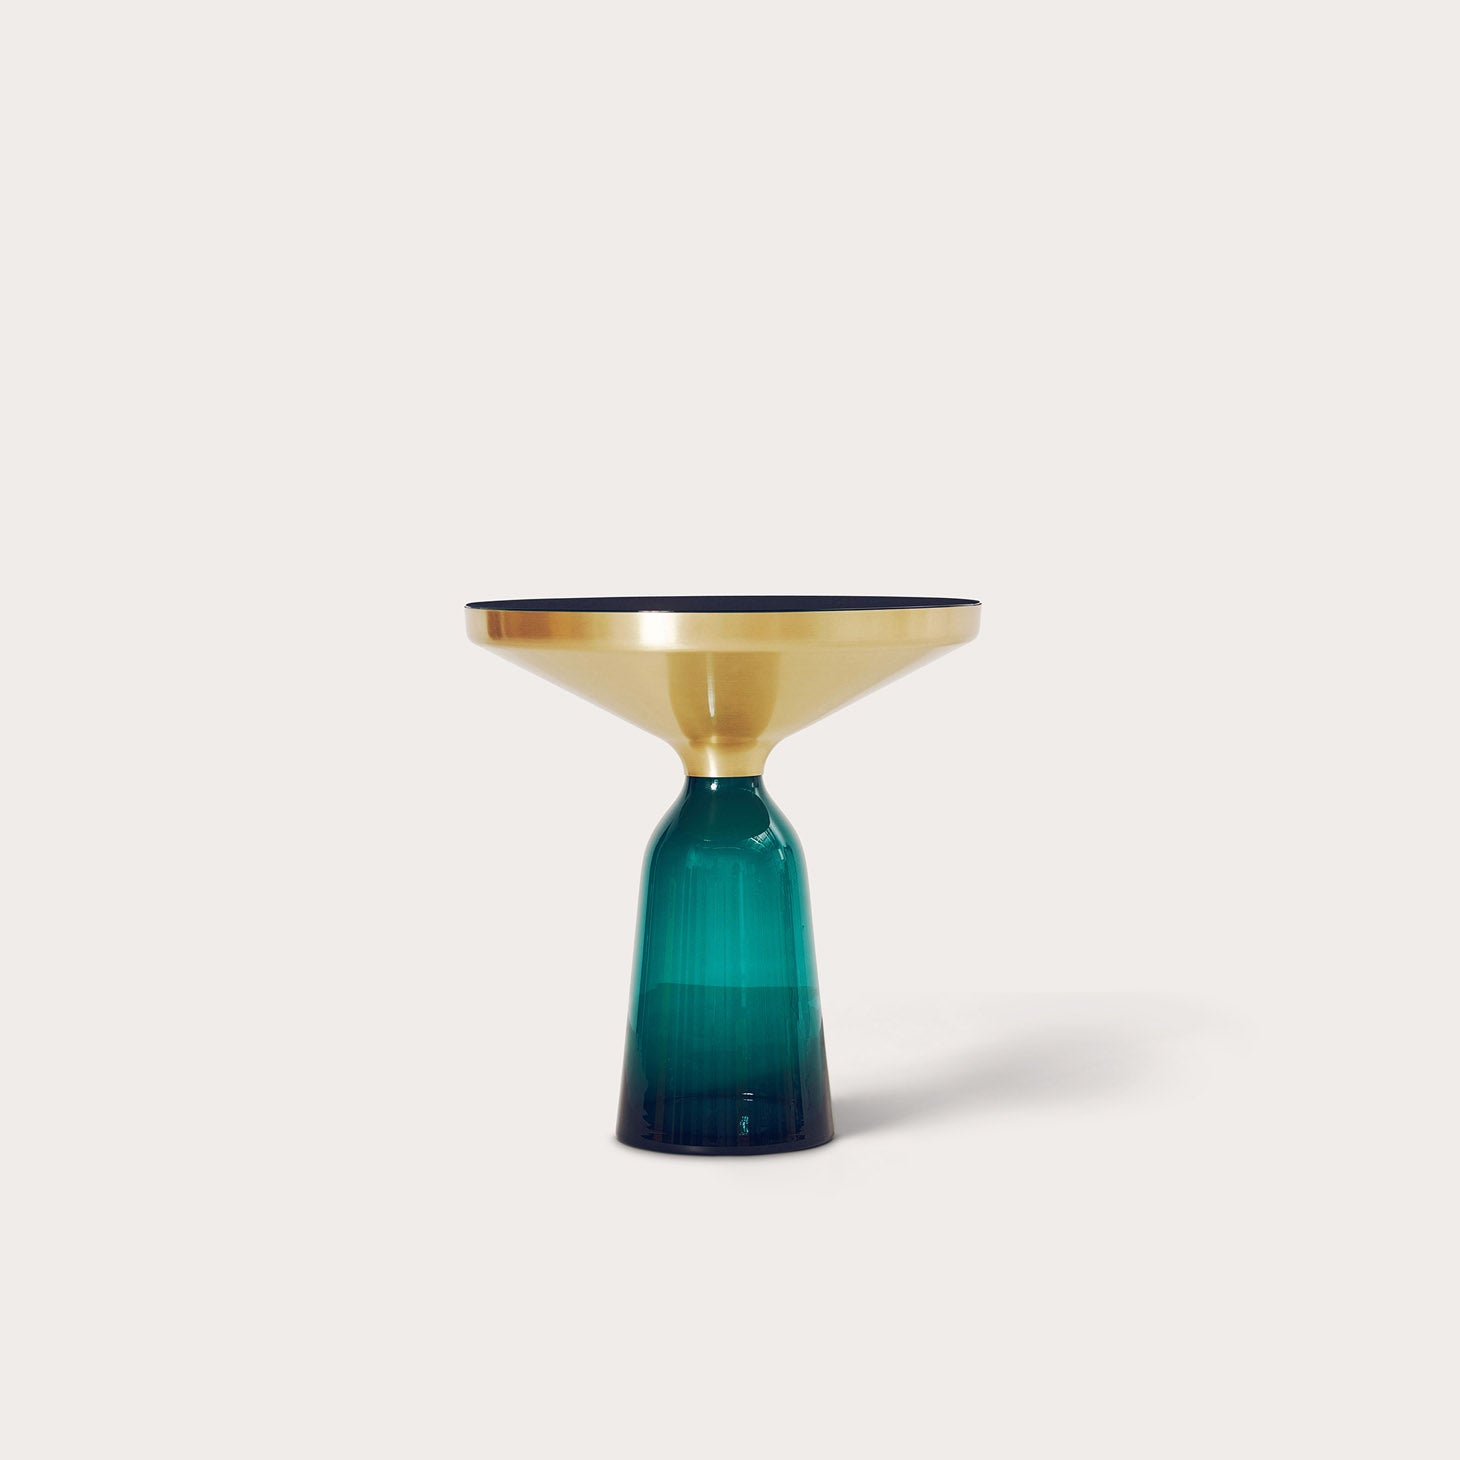 Bell Table Tables Sebastian Herkner Designer Furniture Sku: 001-230-10163